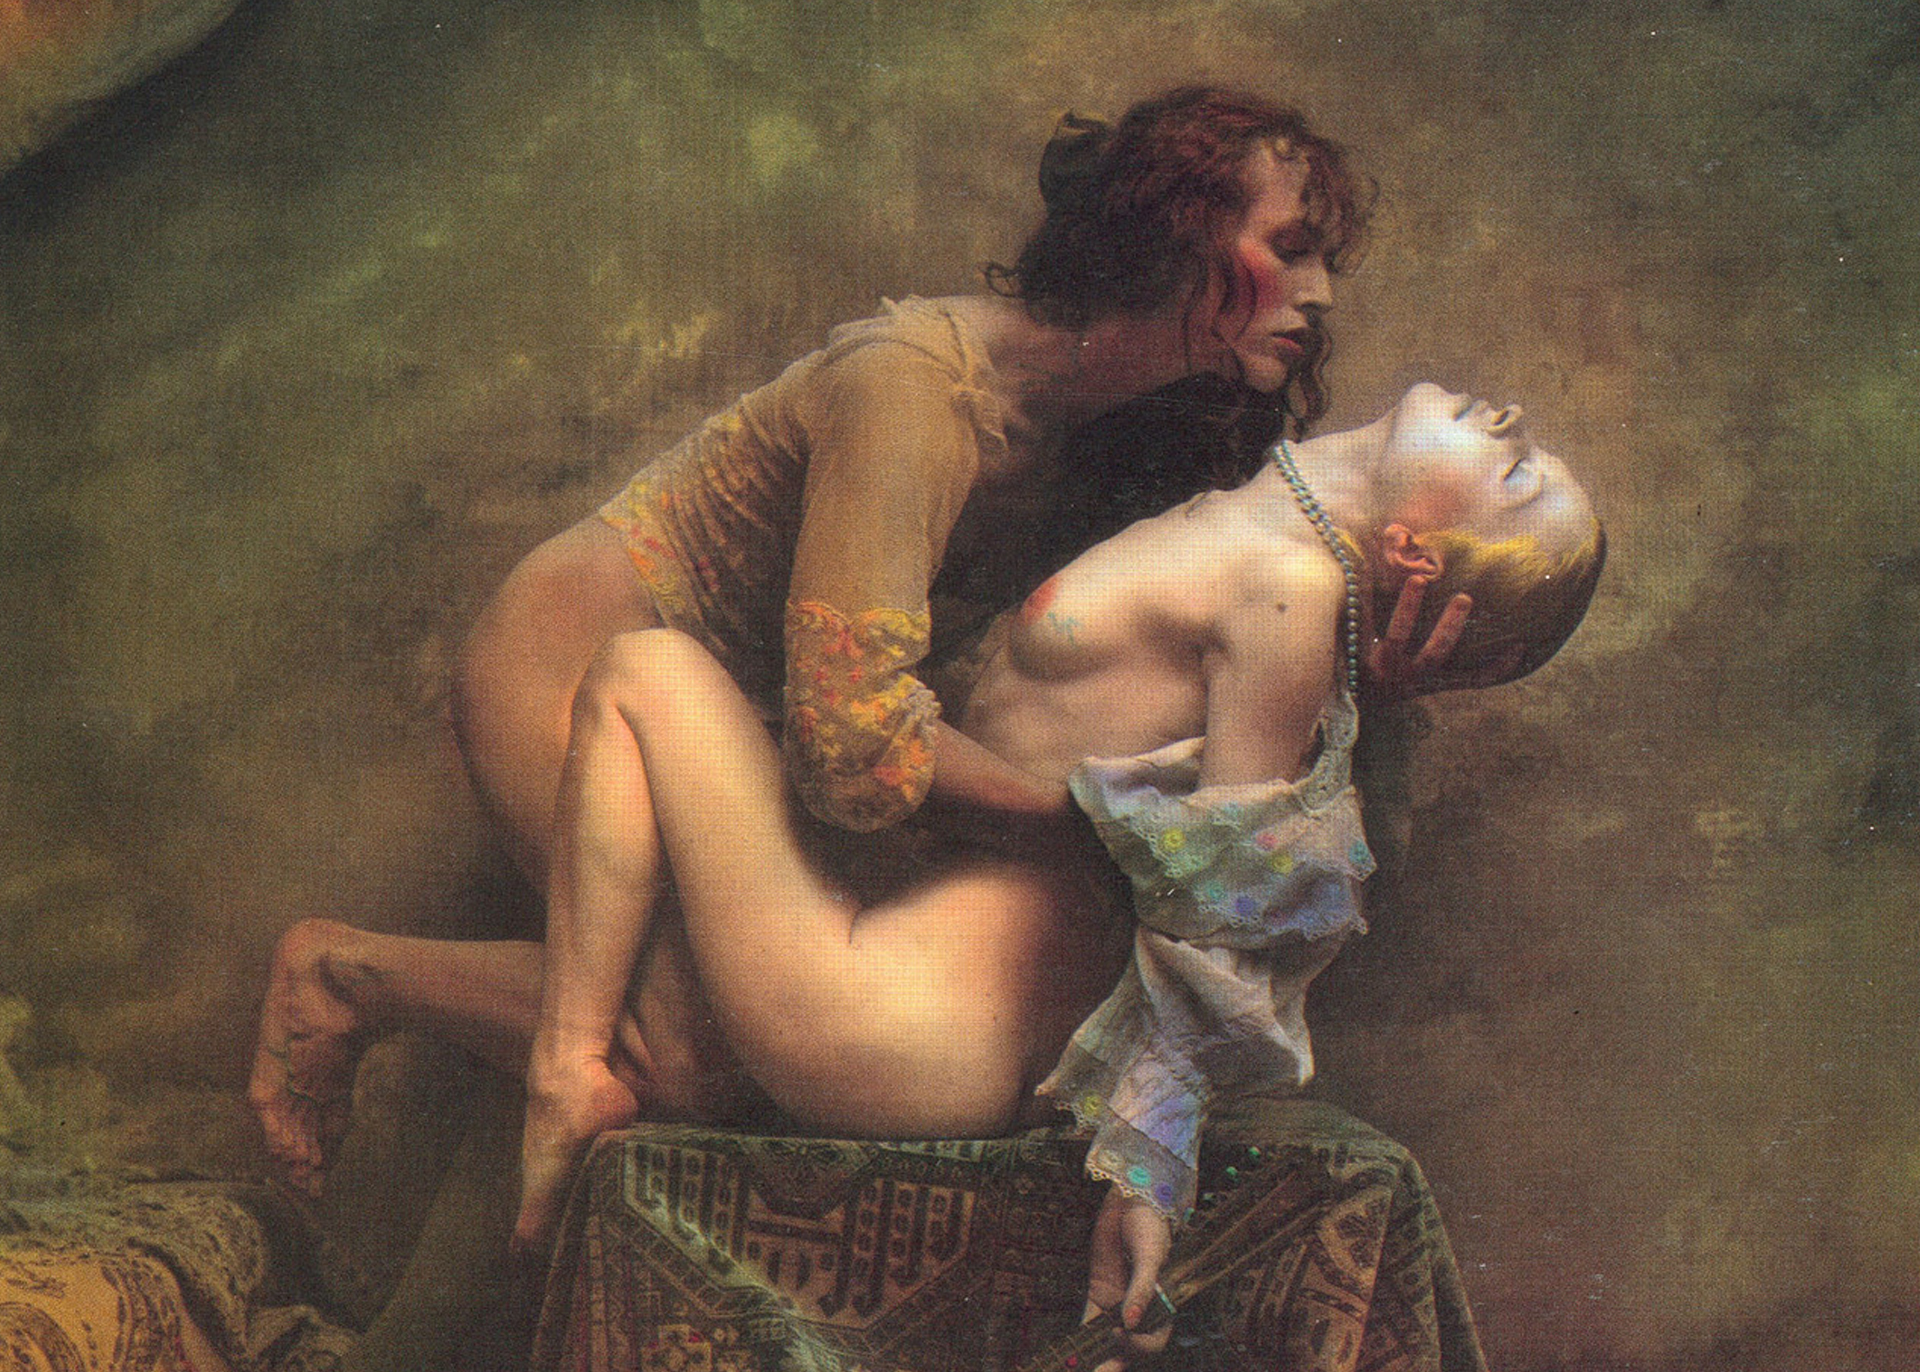 Jan Saudek 01 Horizontal 0003